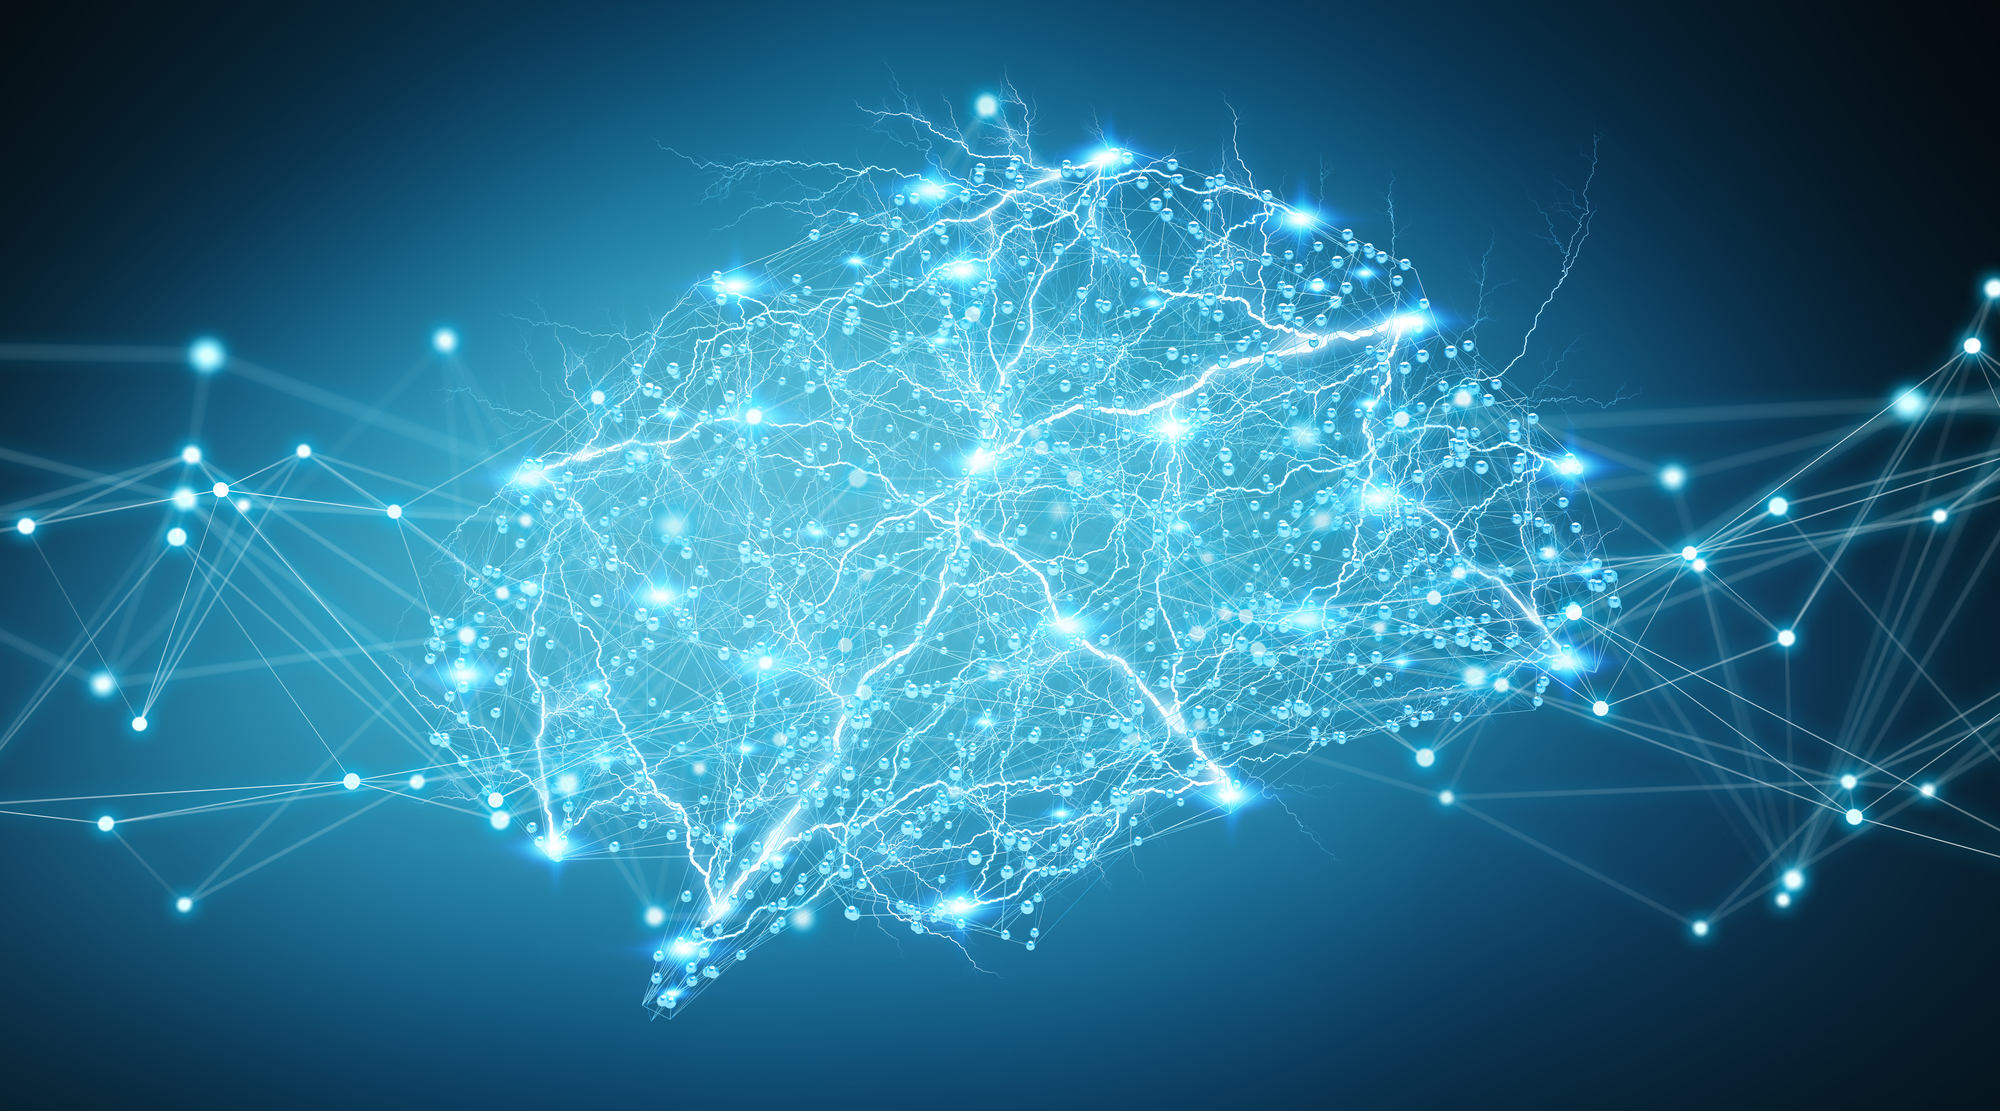 Is deep learning overhyped?